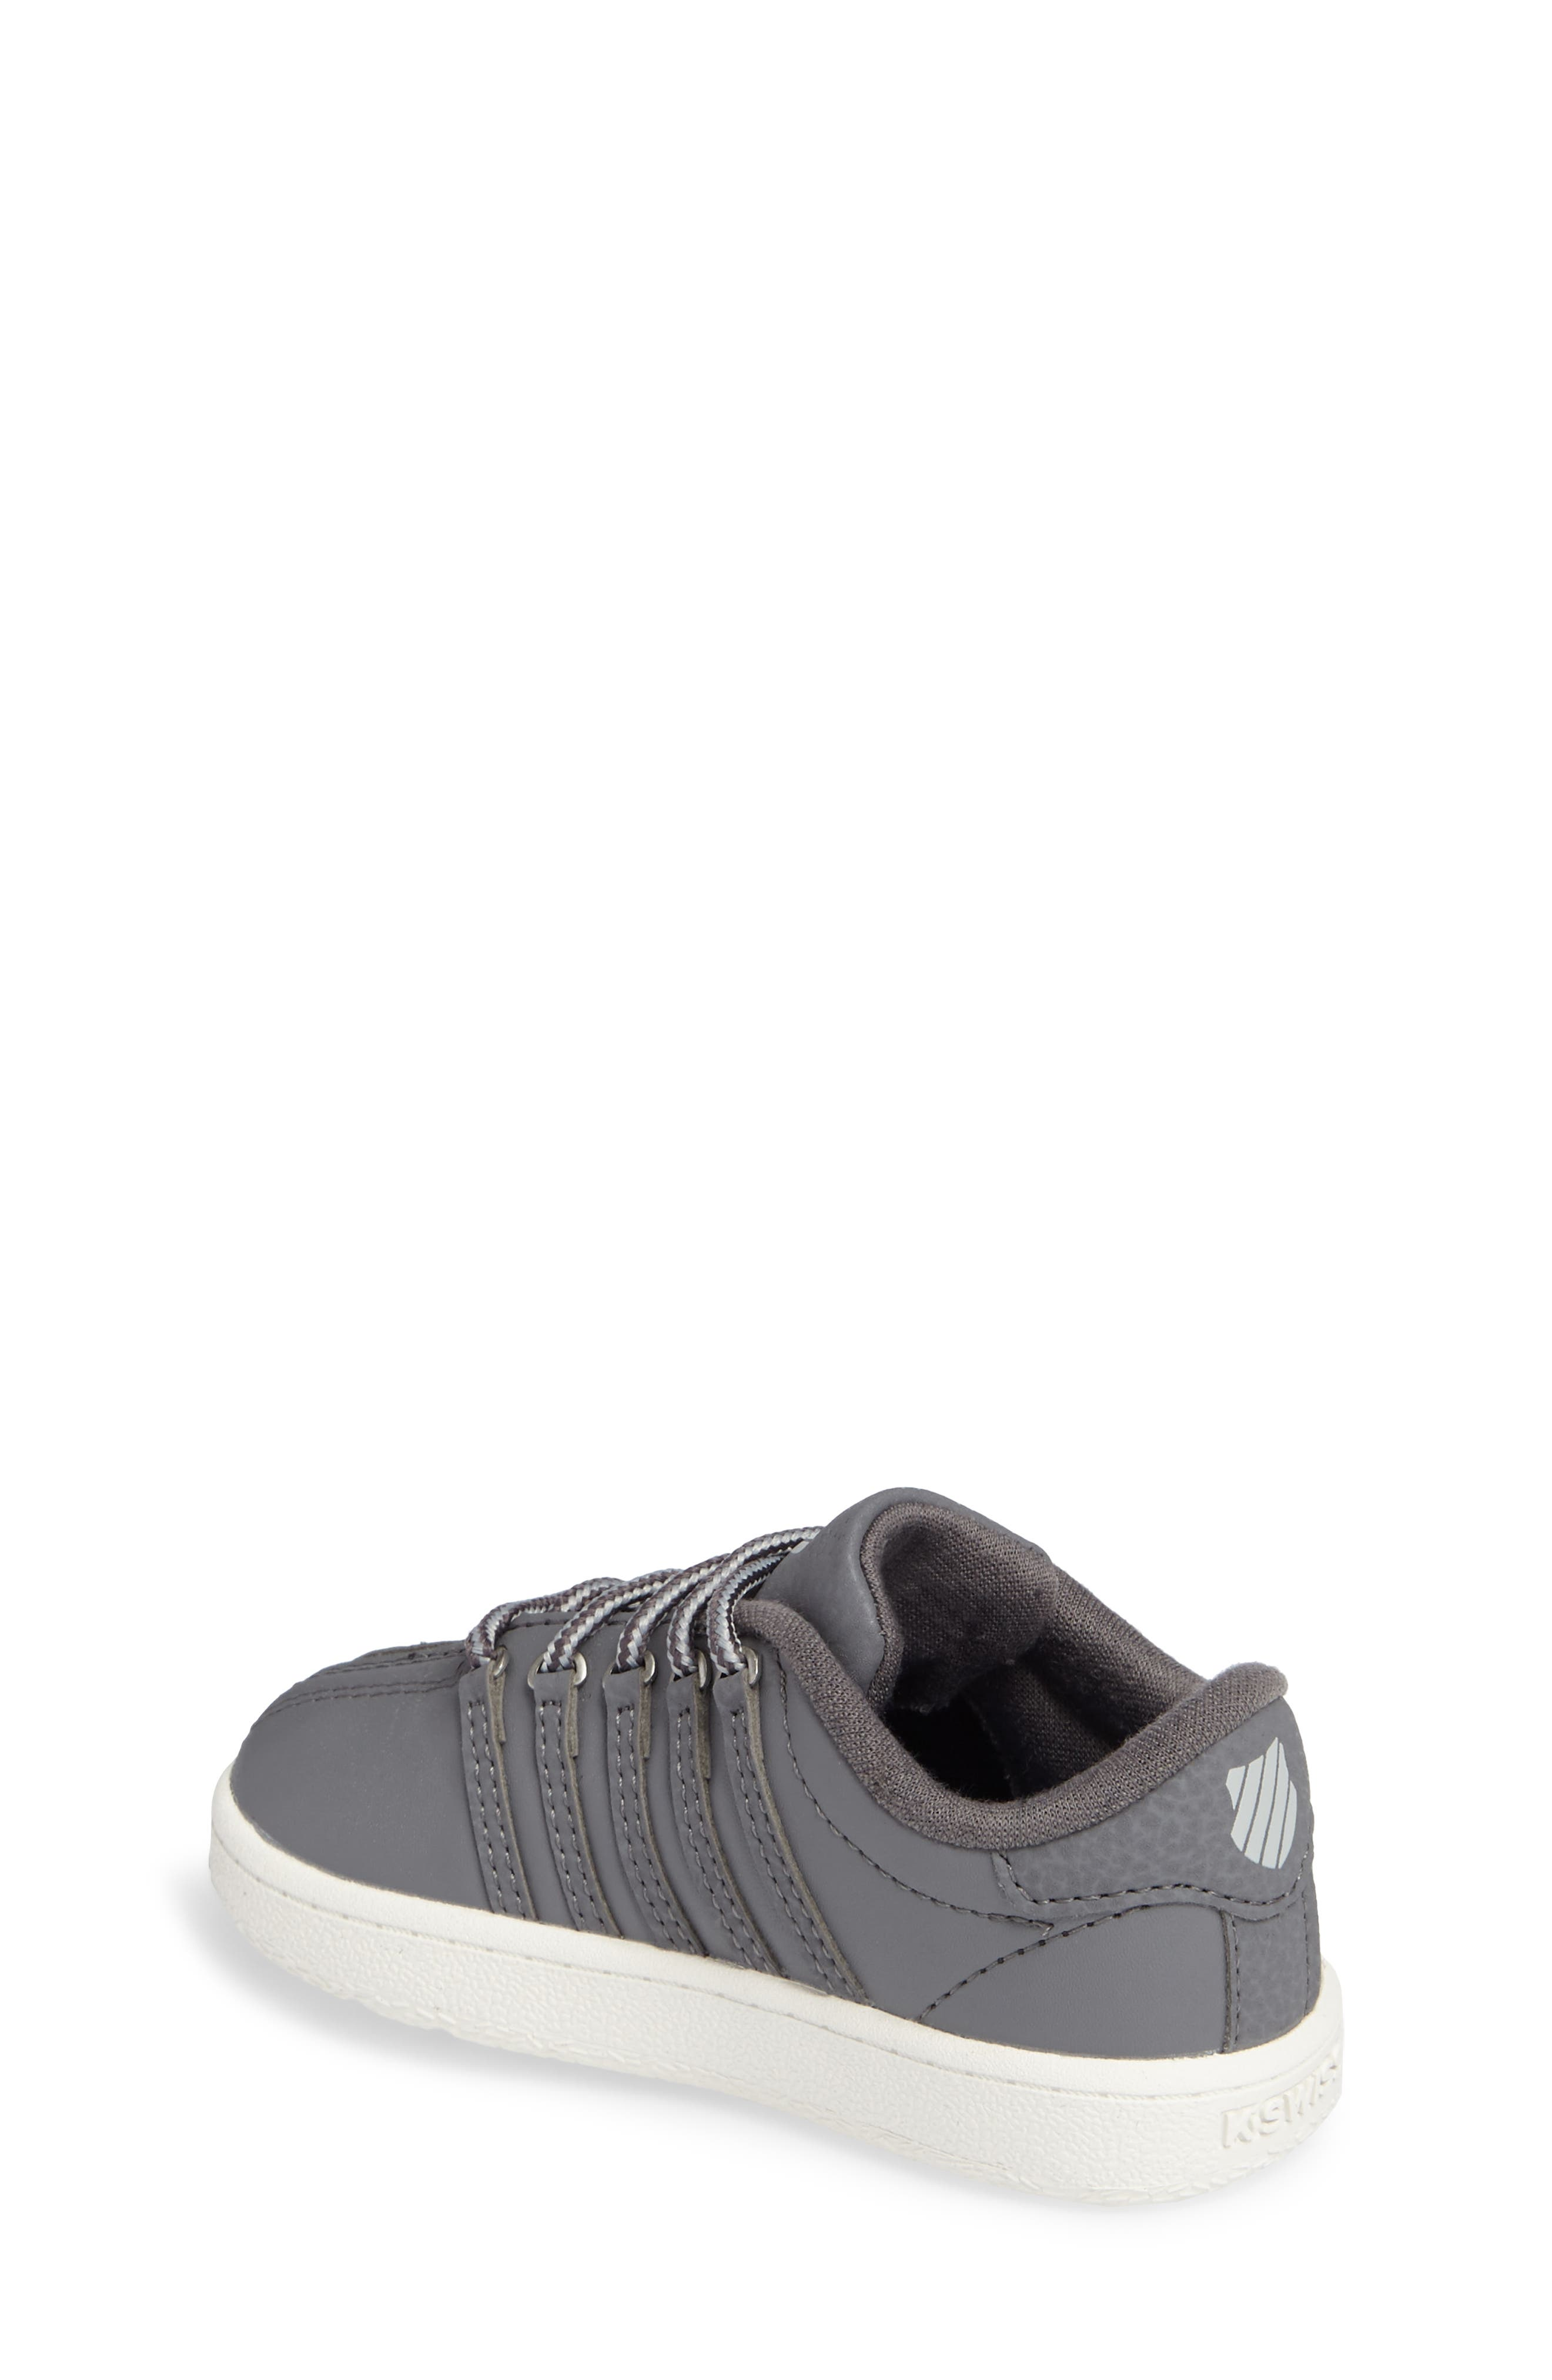 Classic VN Sneaker,                             Alternate thumbnail 2, color,                             Charcoal/ Storm/ Lily White